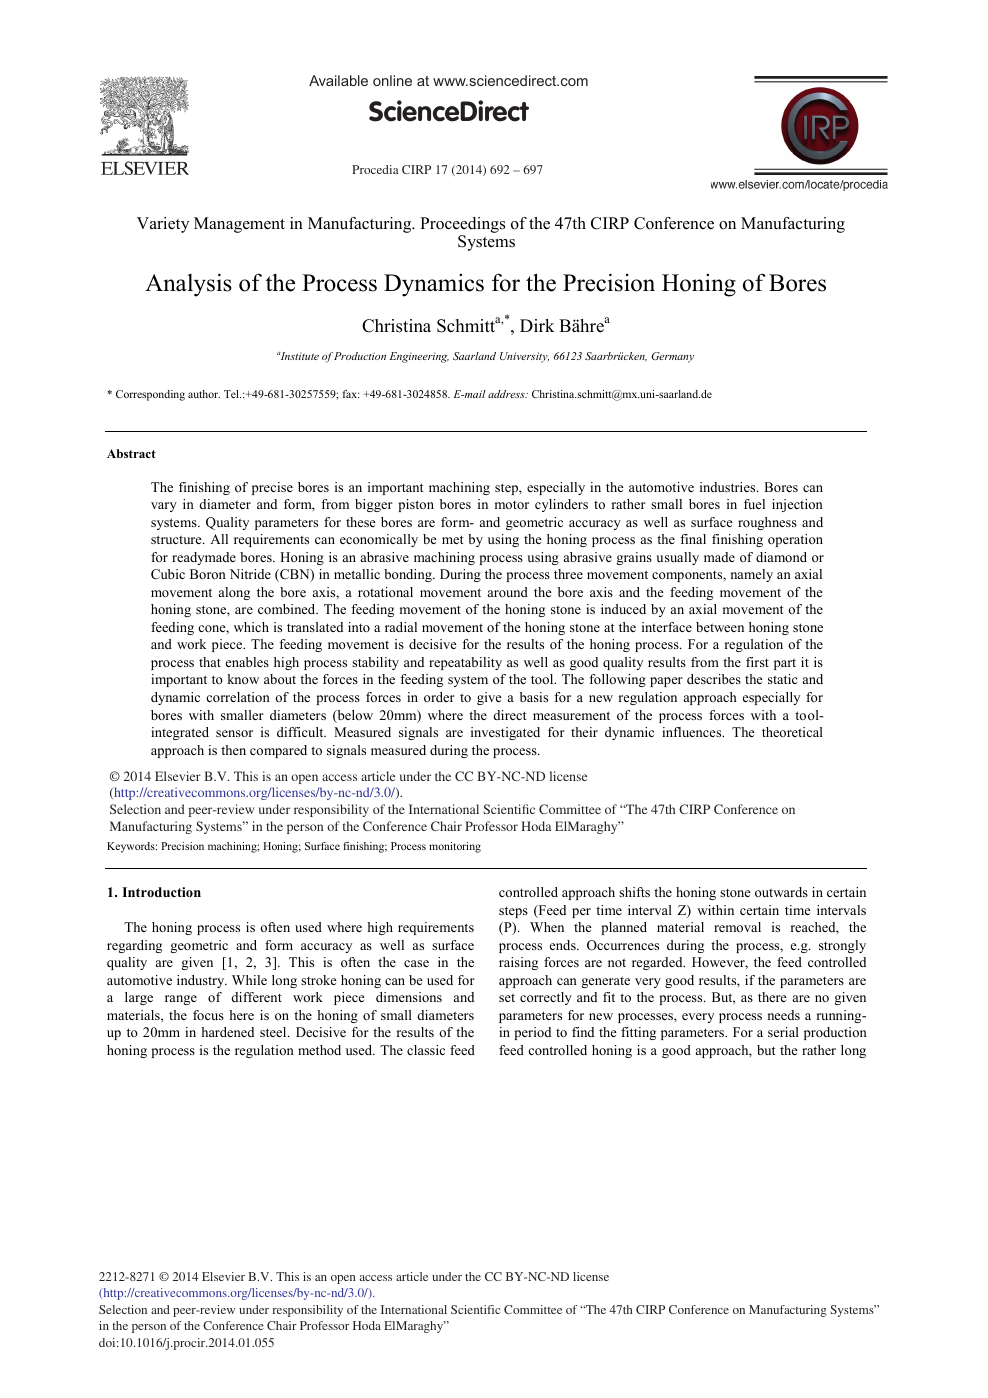 Analysis of the Process Dynamics for the Precision Honing of